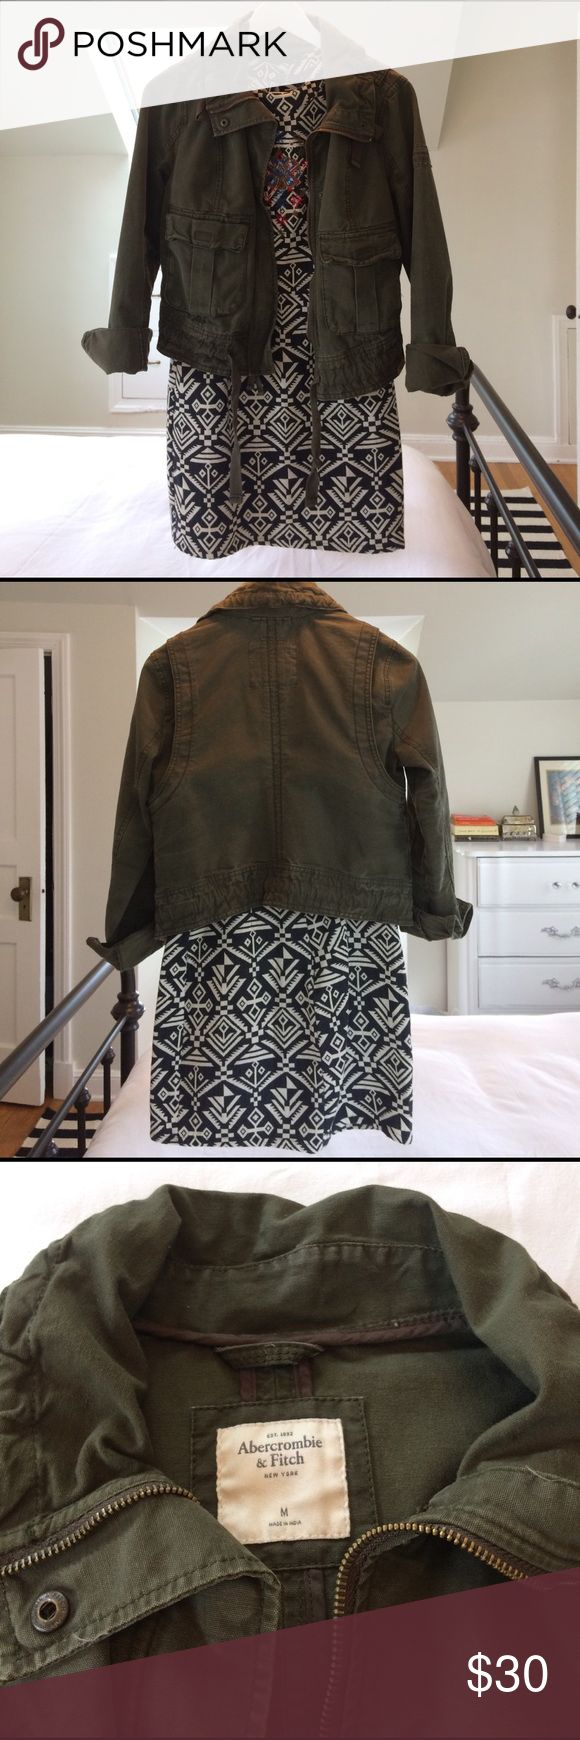 Abercrombie Cropped Military Jacket Cute cropped army green military jacket by A&F. I got this as a gift but have never worn it. Two front pockets, zip and snap front closure. Size is M but is more like a S. Excellent condition and like new. Super cute spring jacket! Abercrombie & Fitch Jackets & Coats Utility Jackets